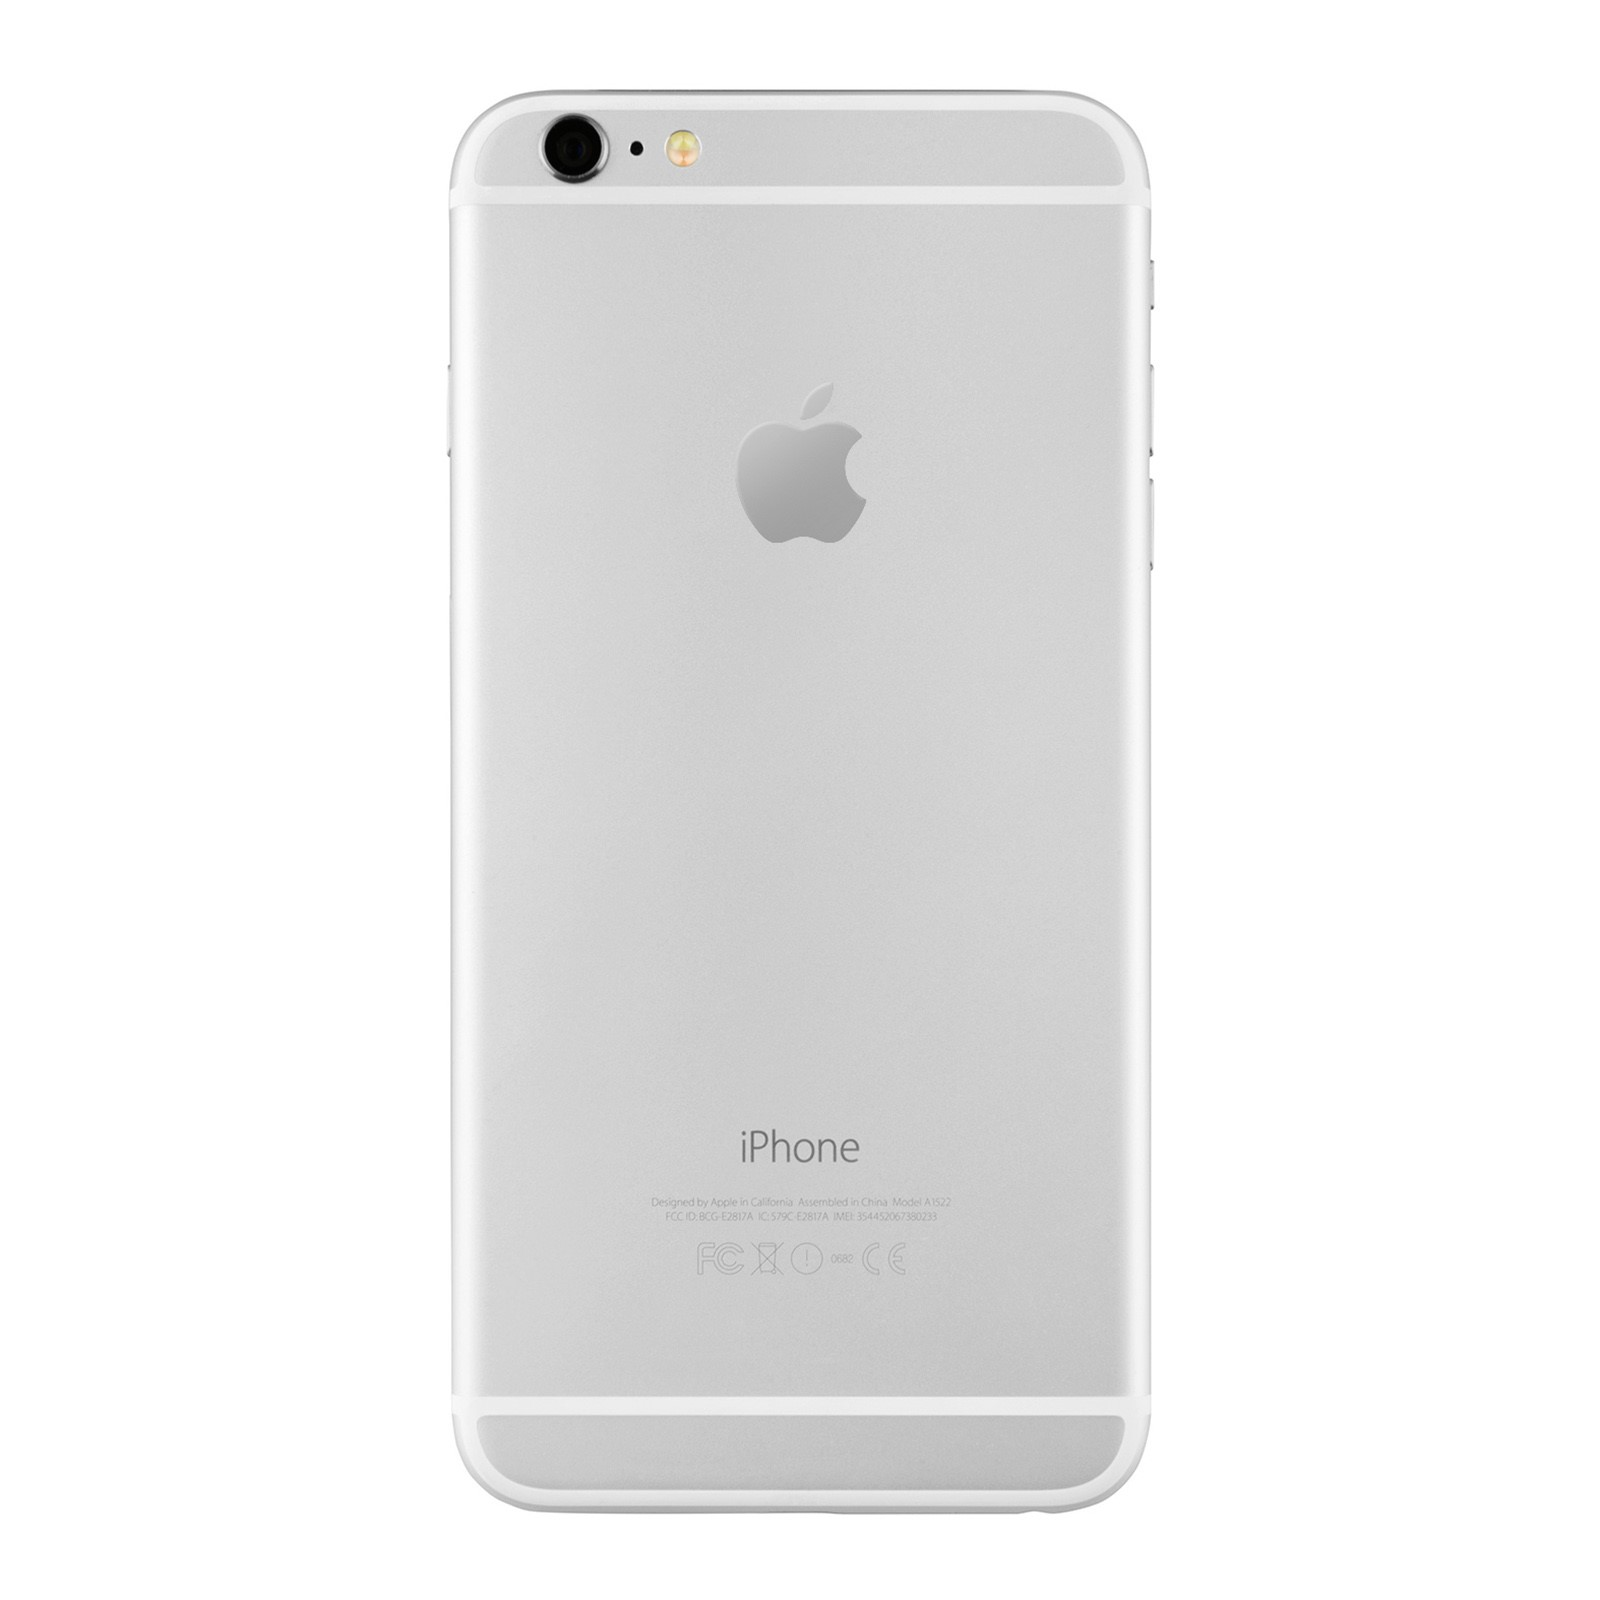 iphone apple care apple iphone 6 plus 16gb gsm unlocked smartphone tanga 8662